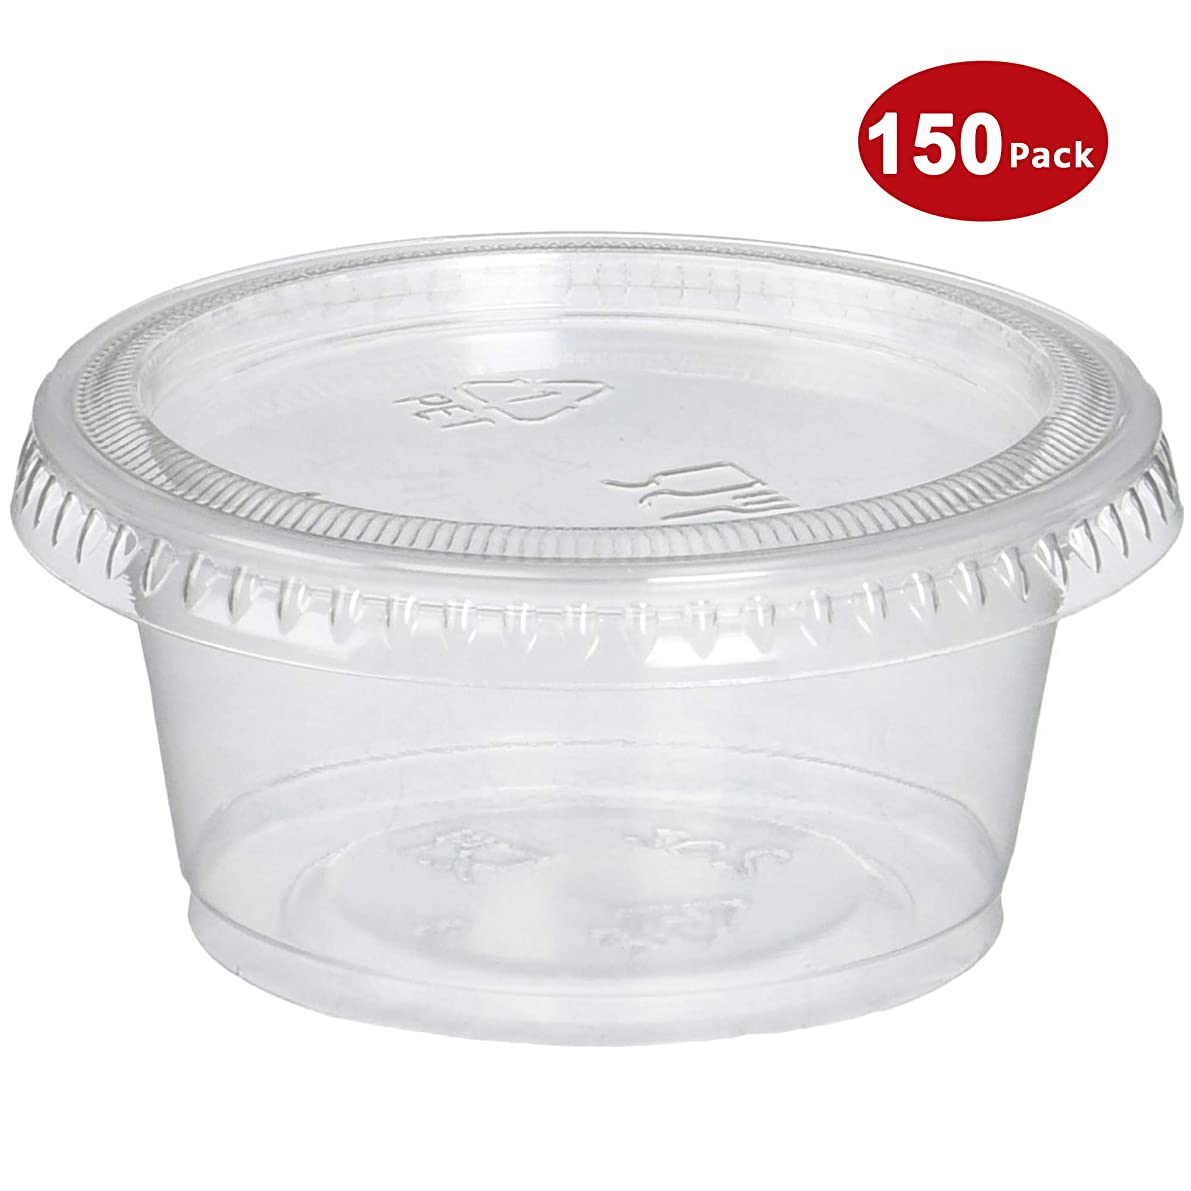 Plastic Portion Cups with Lids 2 oz. Pack of 150 Jello Shot Cup Salad Dressing Containers for Sauce Condiment Snack Souffle and Salsa, BPA Free - by DuraHome?